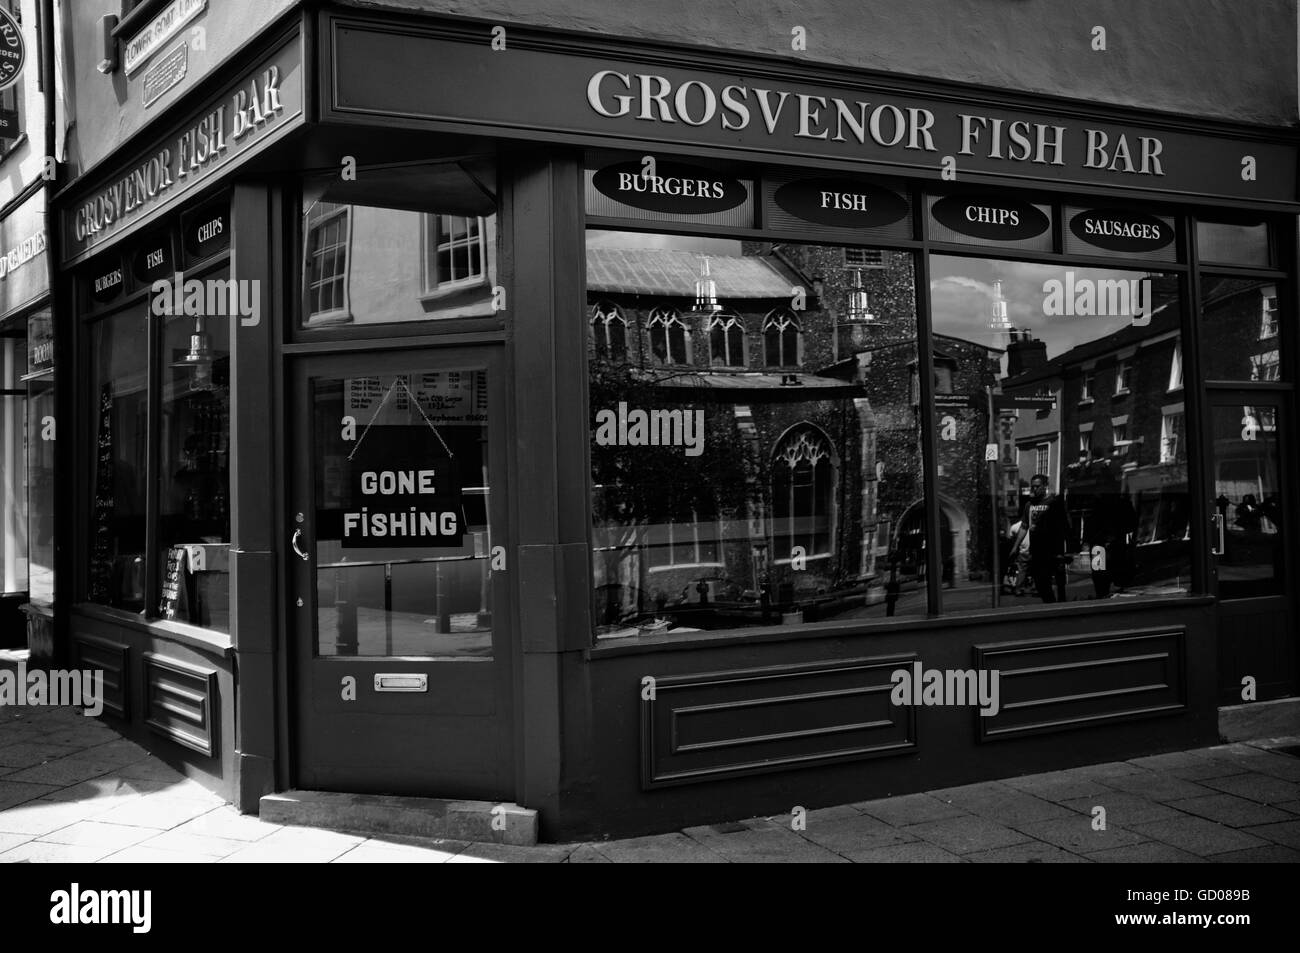 Grosvenor Fish and Chip shop, Norwich Lanes, Norwich, Norfolk with a Gone Fishing sign in the window to indicate - Stock Image